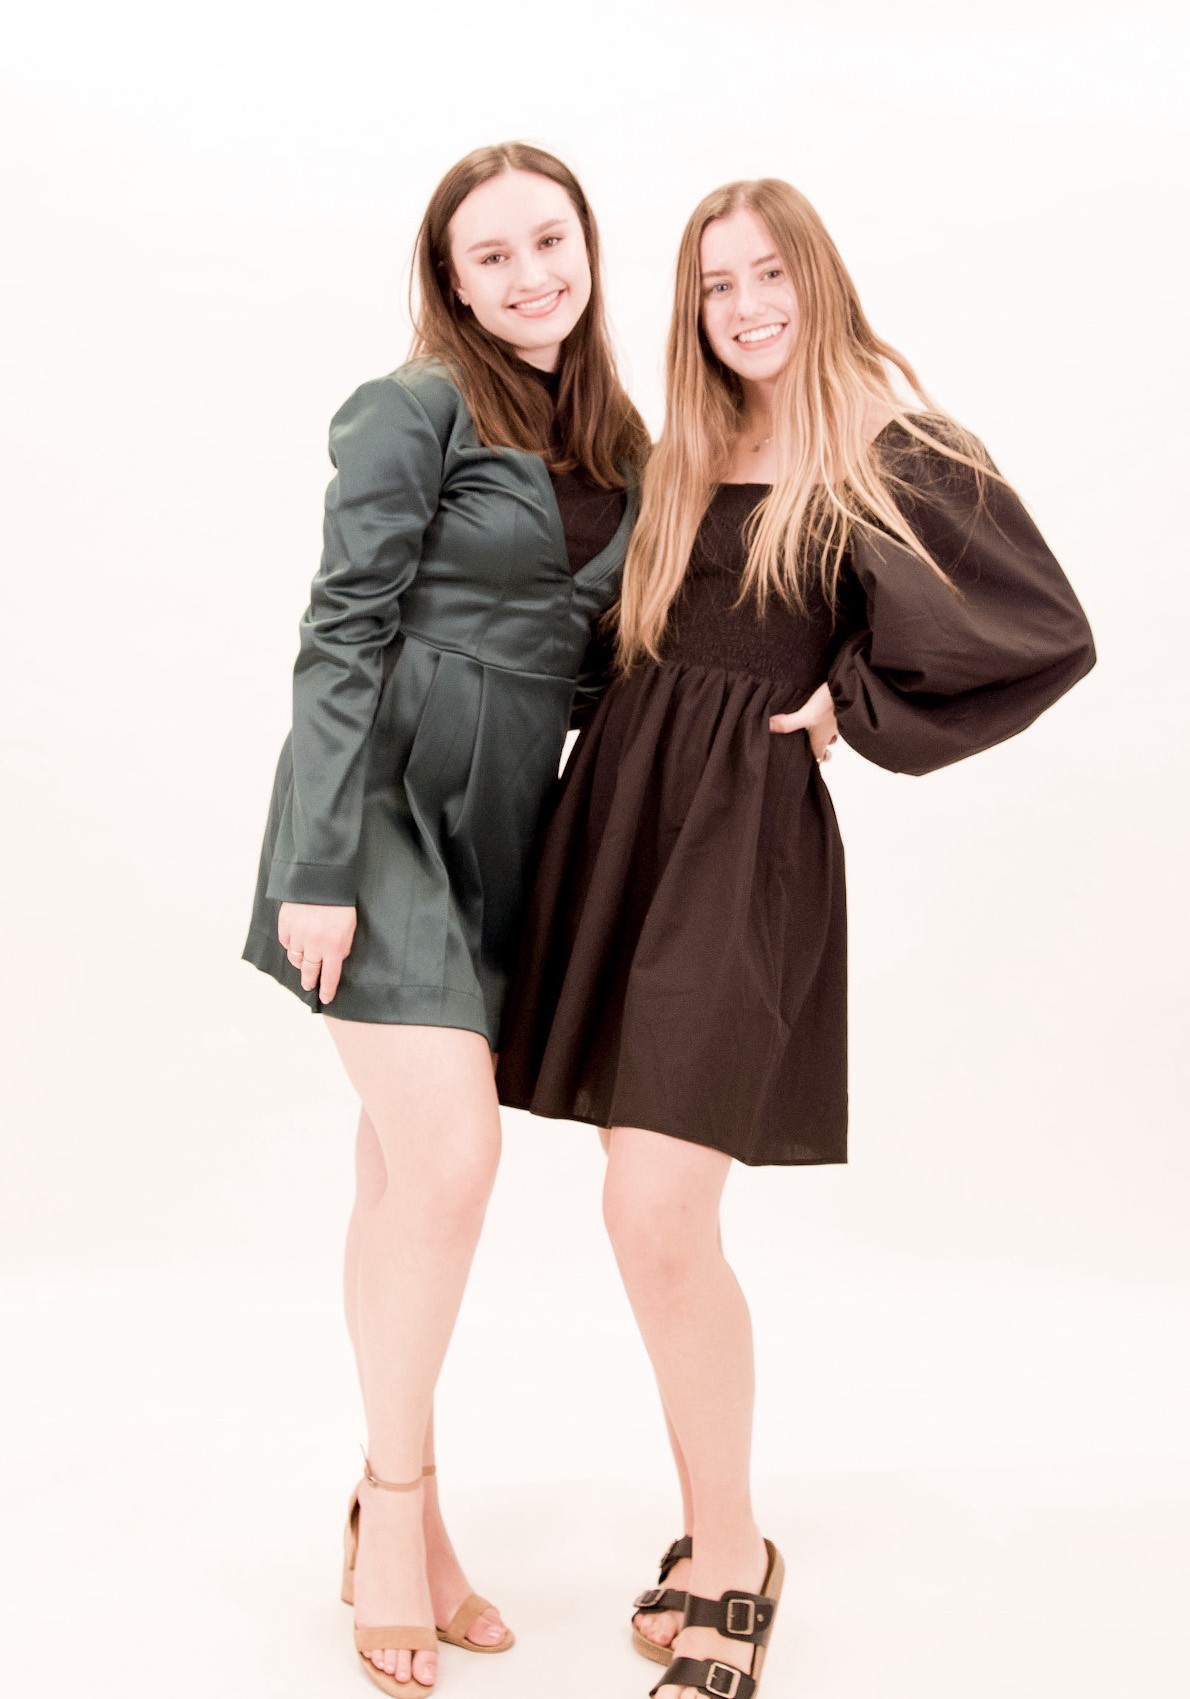 Isabel and Caroline Bercaw, founders of Da Bomb Fizzers wearing custom-made Bastet Noir dresses